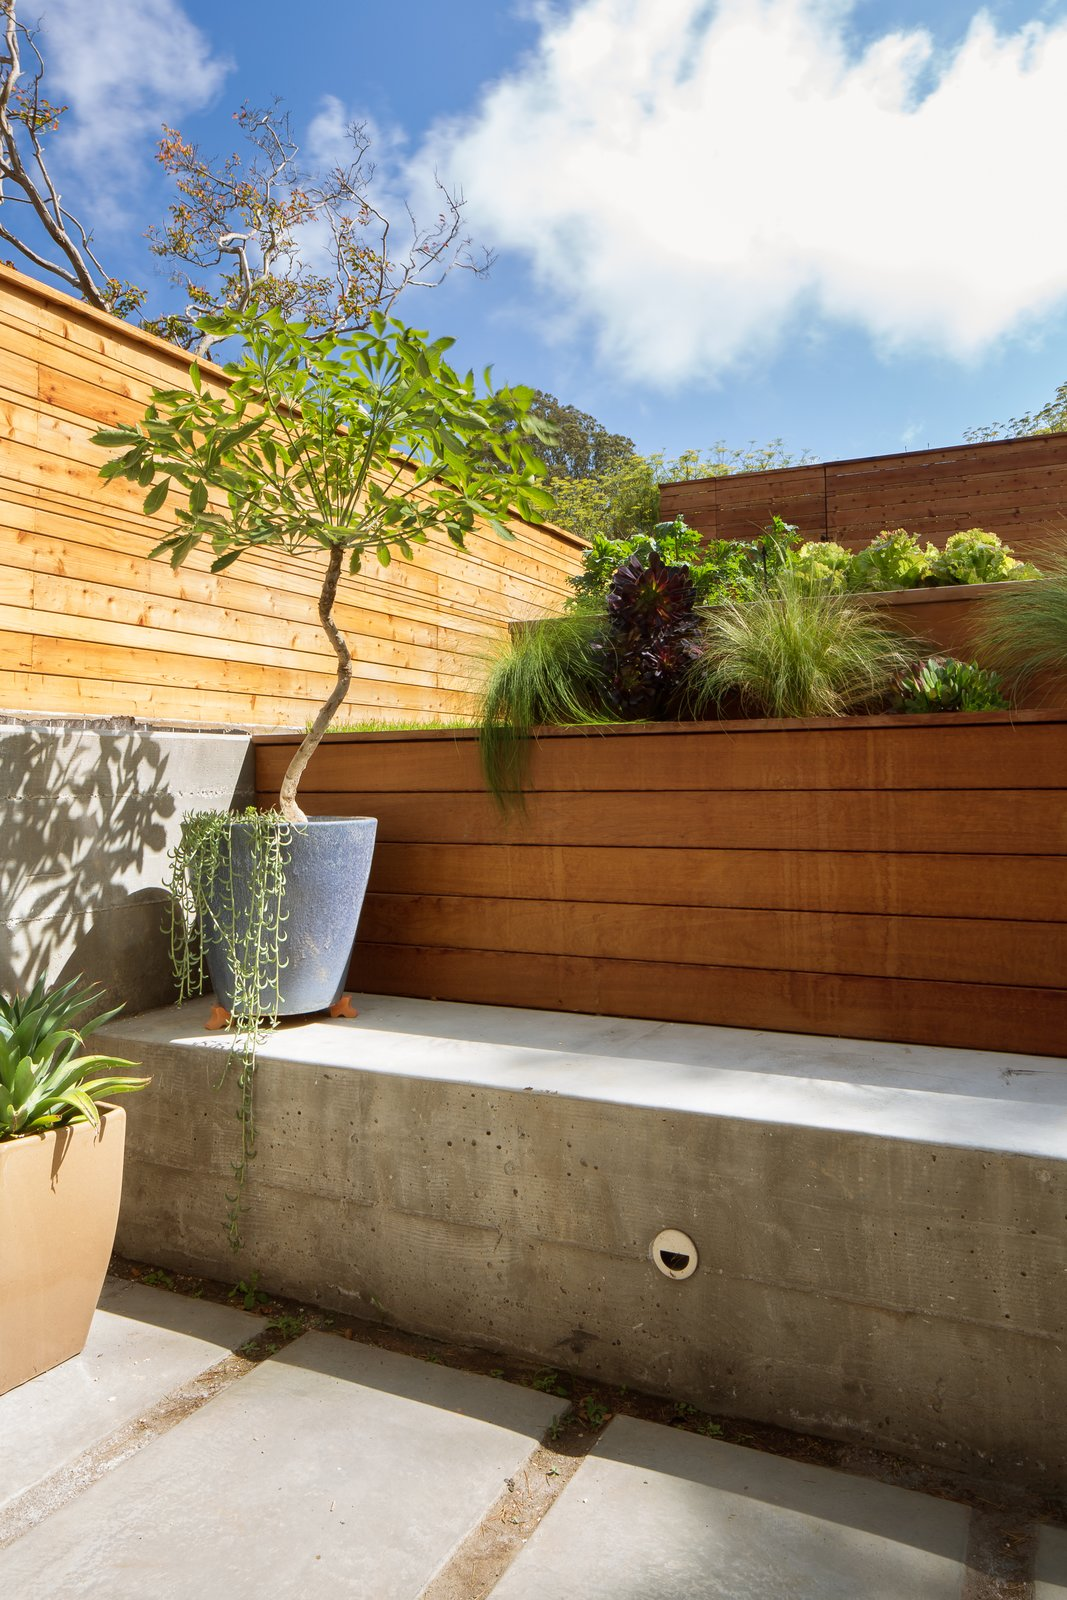 Outdoor, Pavers Patio, Porch, Deck, and Small Patio, Porch, Deck Backyard sunken patio  27th Street - Noe Valley by patrick perez/designpad architecture